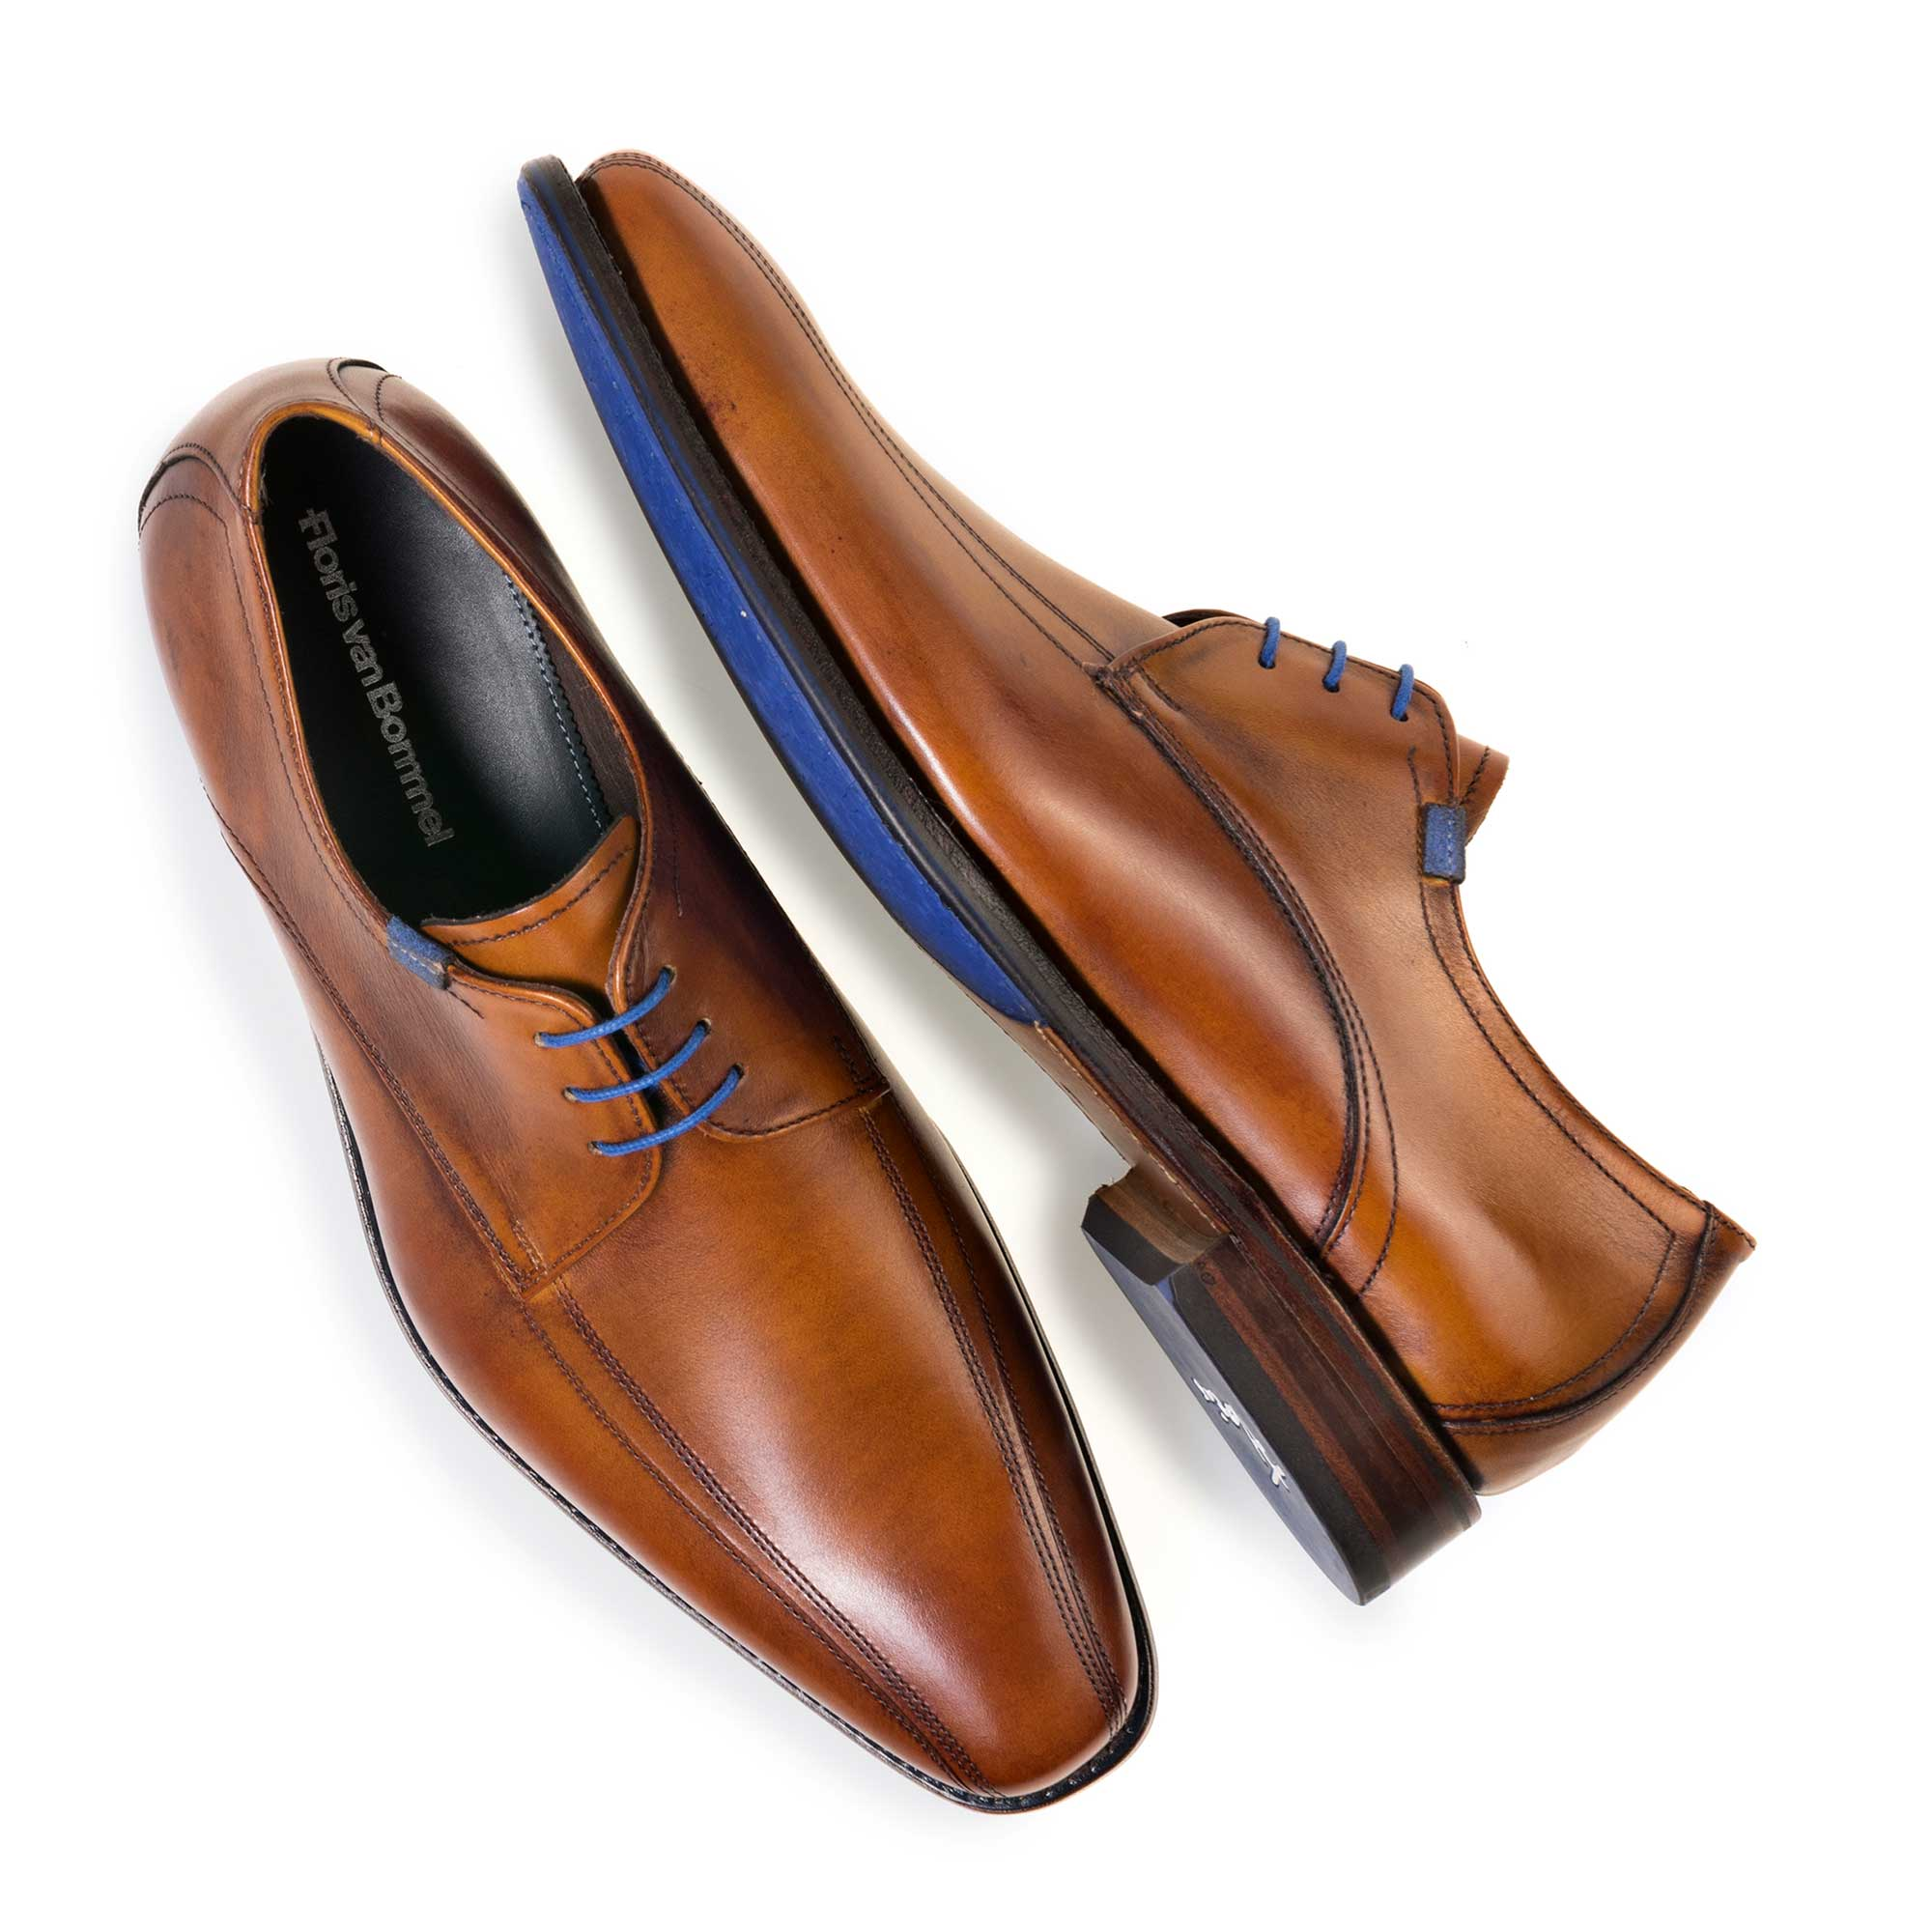 14470/00 - Cognac-coloured calf's leather lace shoe